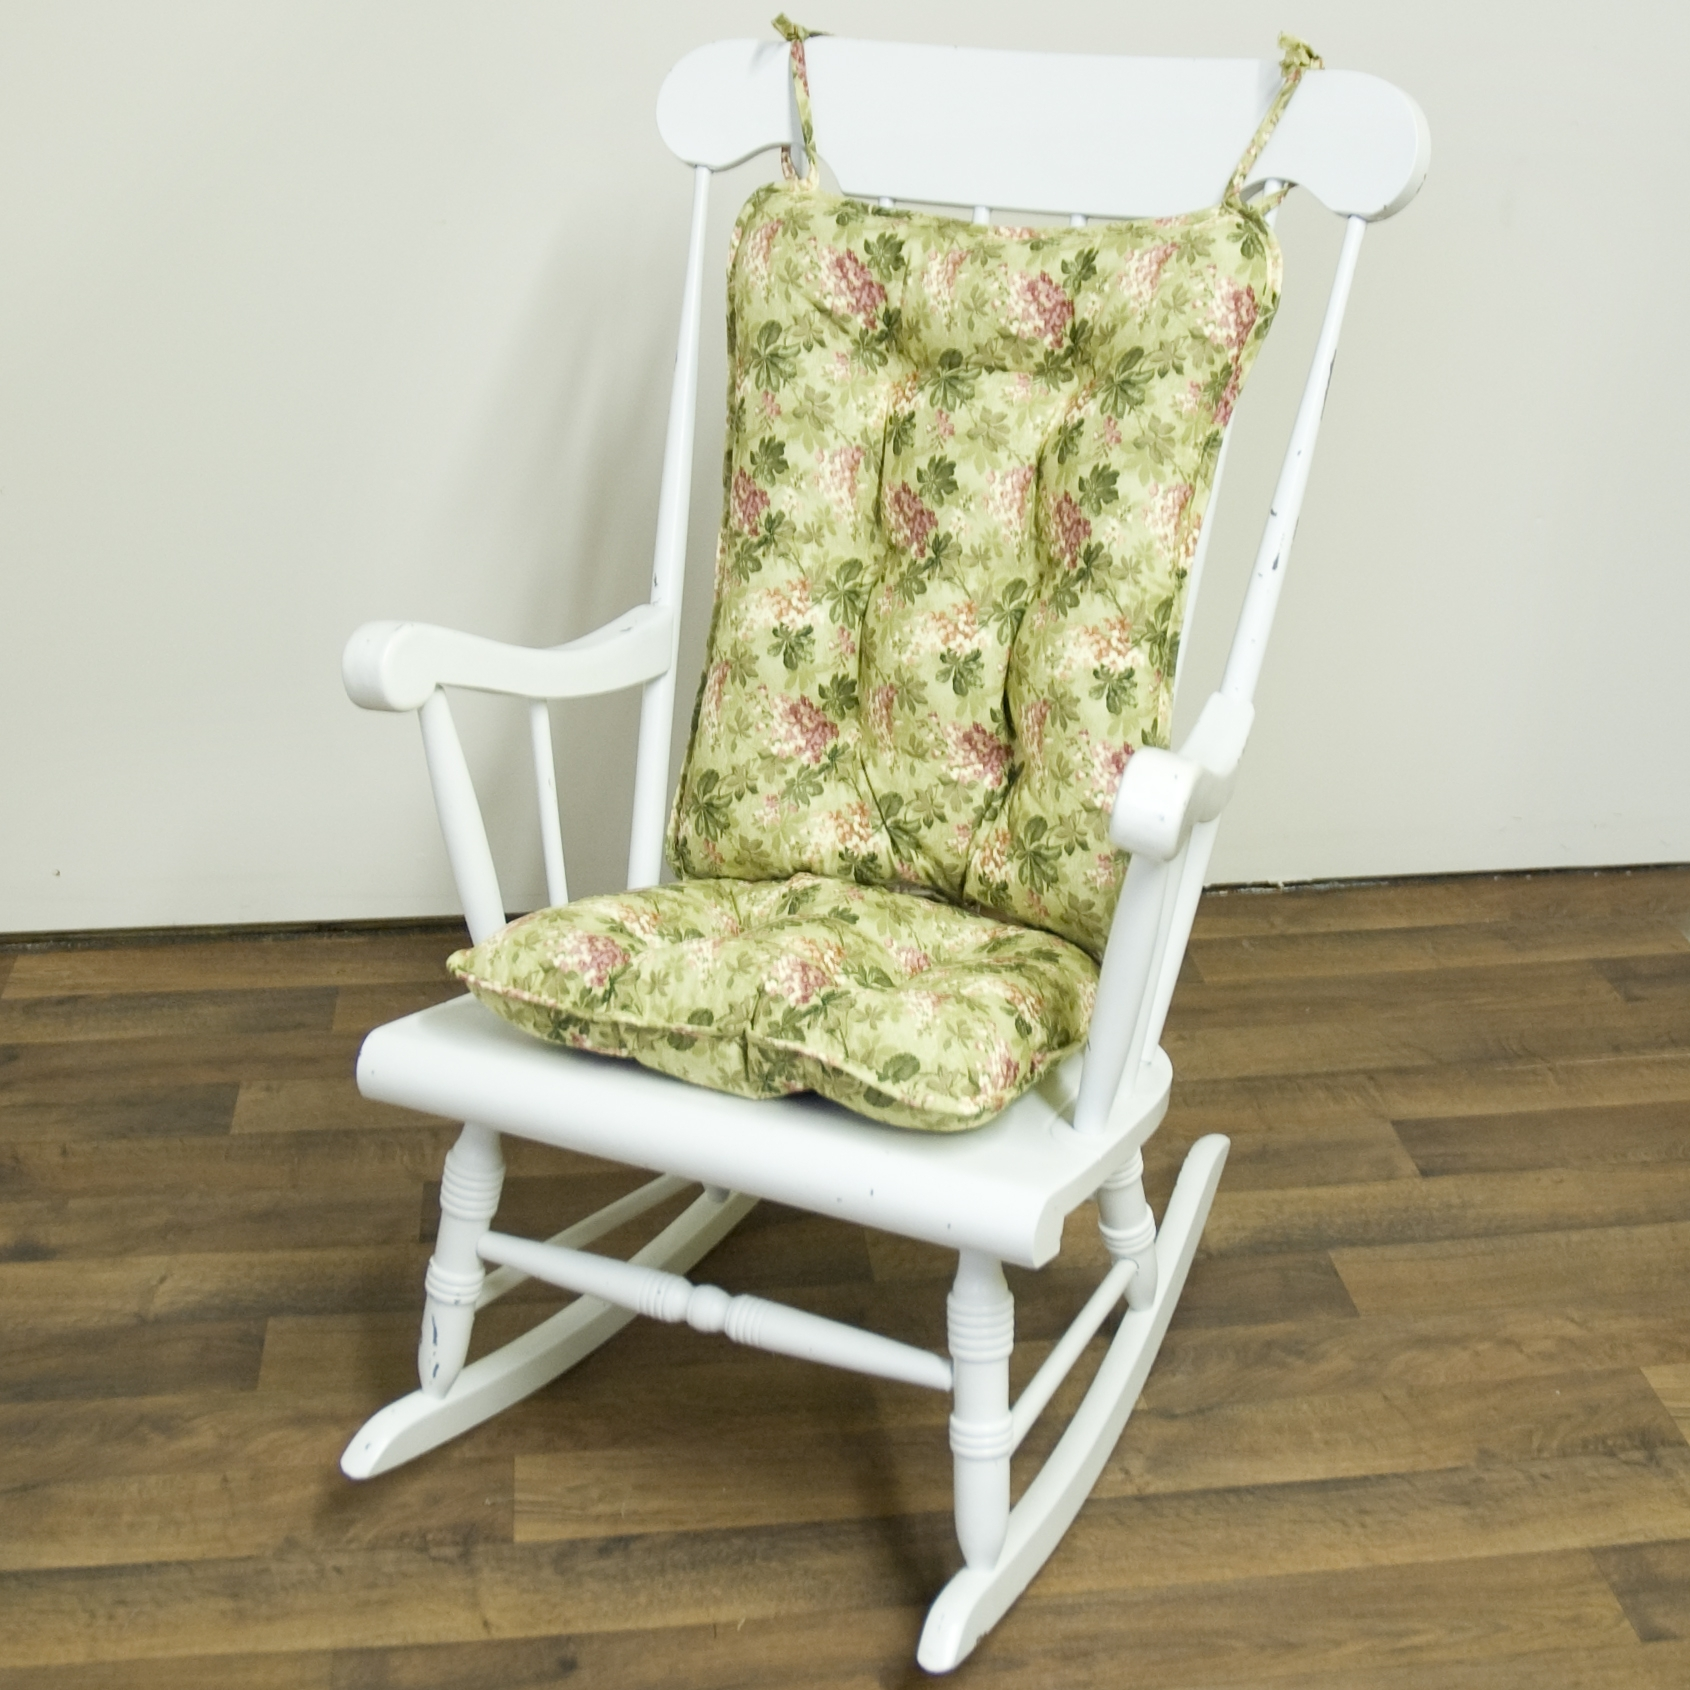 Outdoor Rocking Chair Cushions Flower : Beautiful Outdoor Rocking Pertaining To Yellow Outdoor Rocking Chairs (#6 of 15)